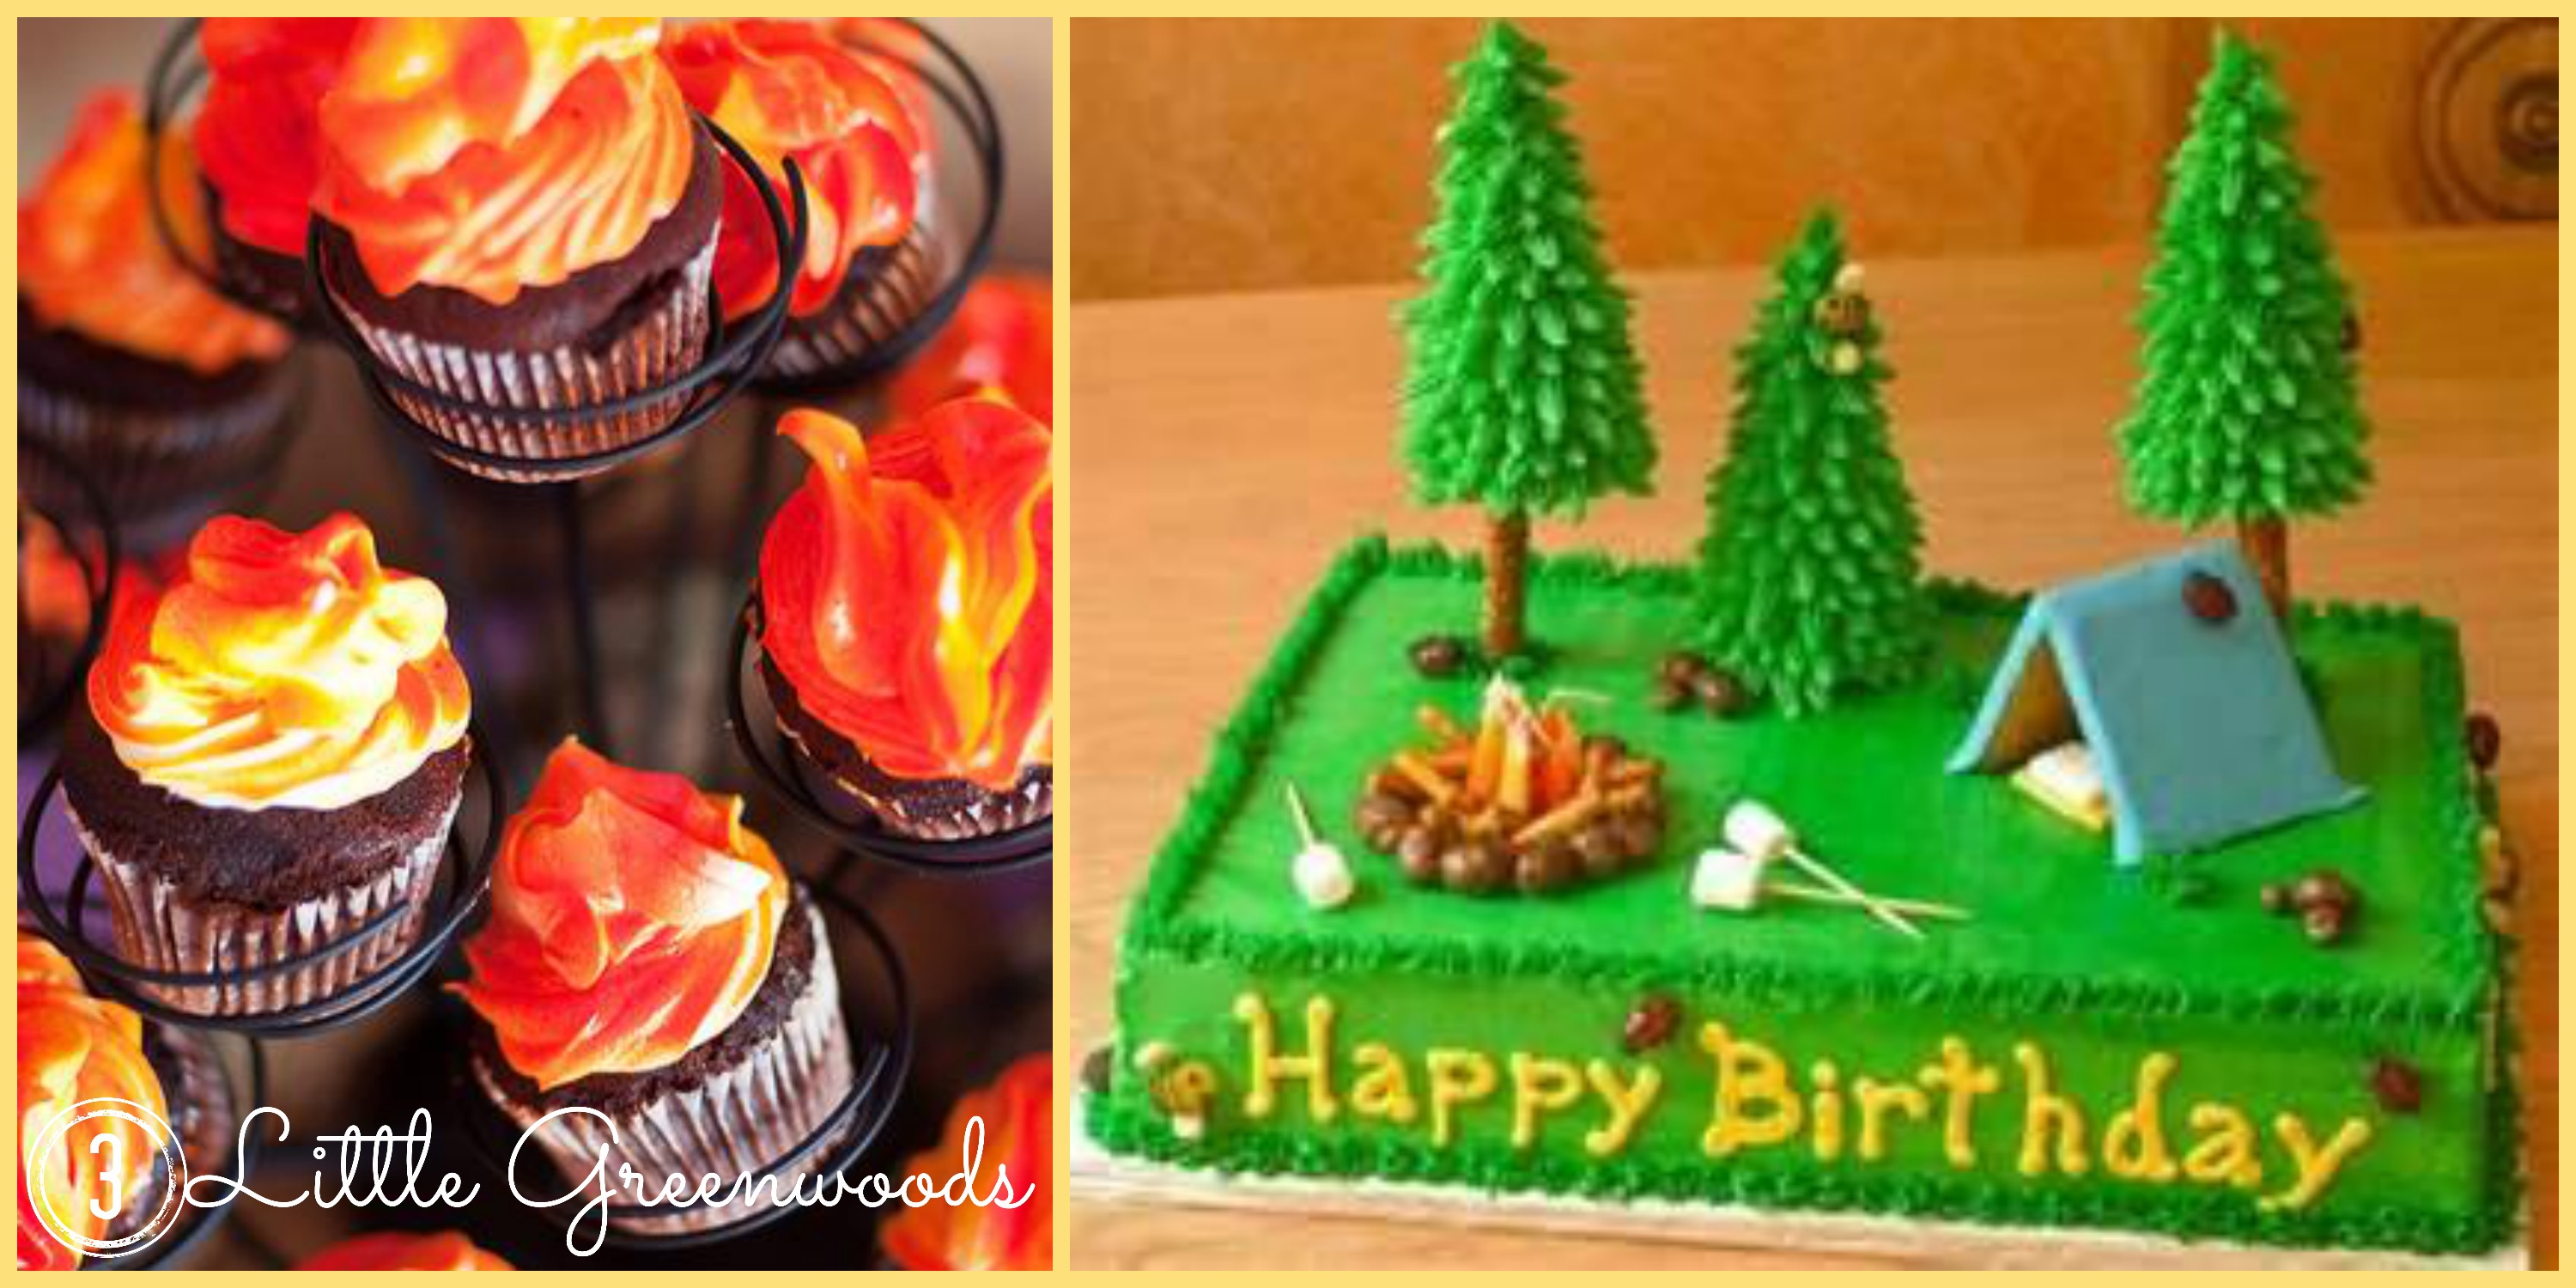 Camp Cakes Collage Fire Cupcakes Glamping Glamorous Camping Party